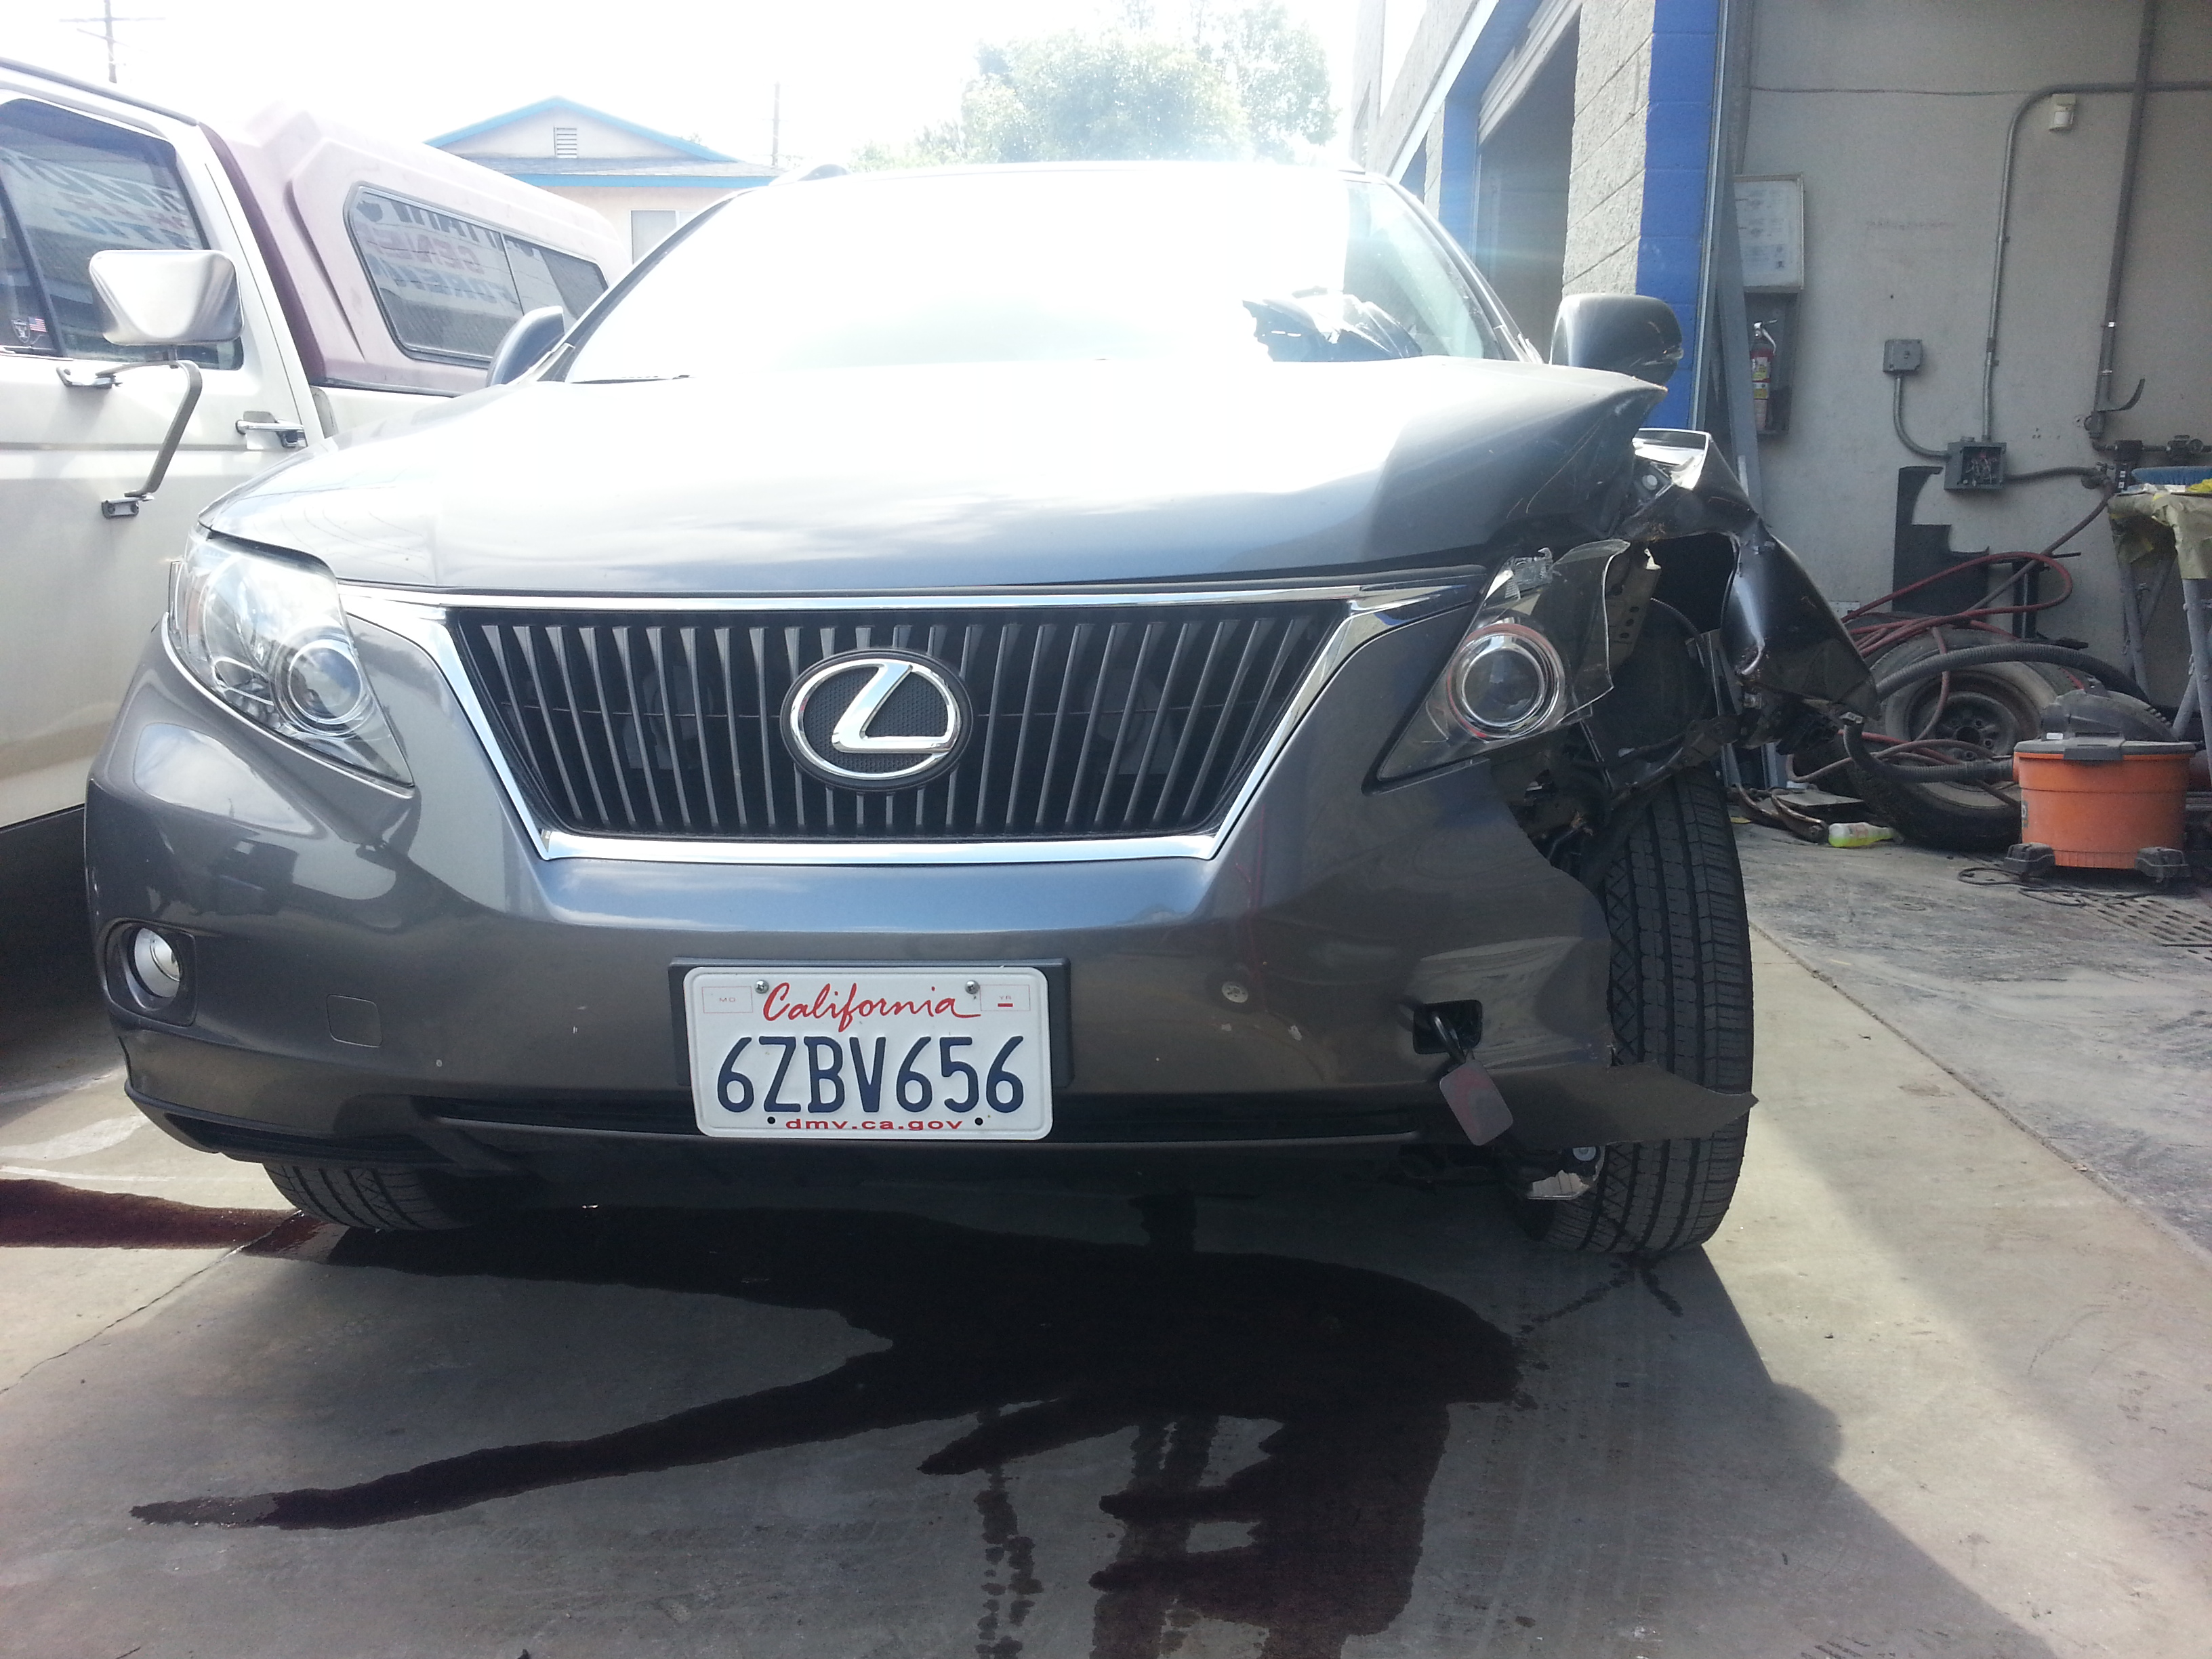 Lexus Auto body repair